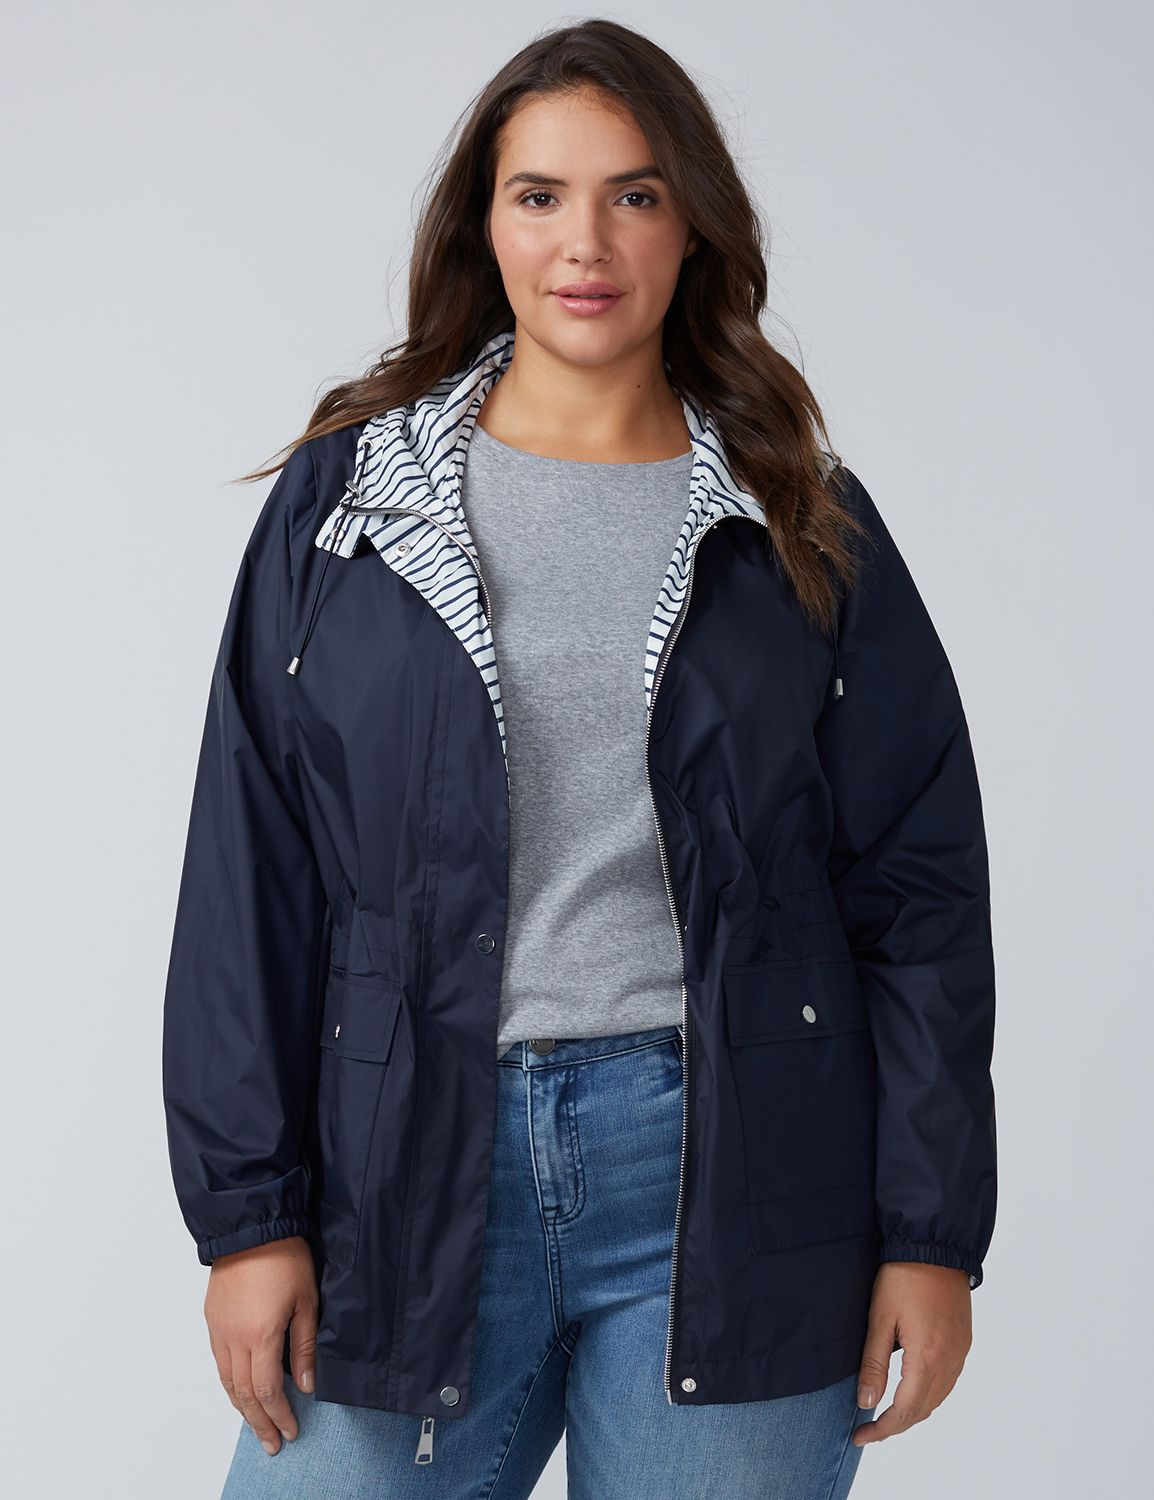 Lane Bryant Womens Striped Anorak Jacket - Reversible 14/16 Navy And White